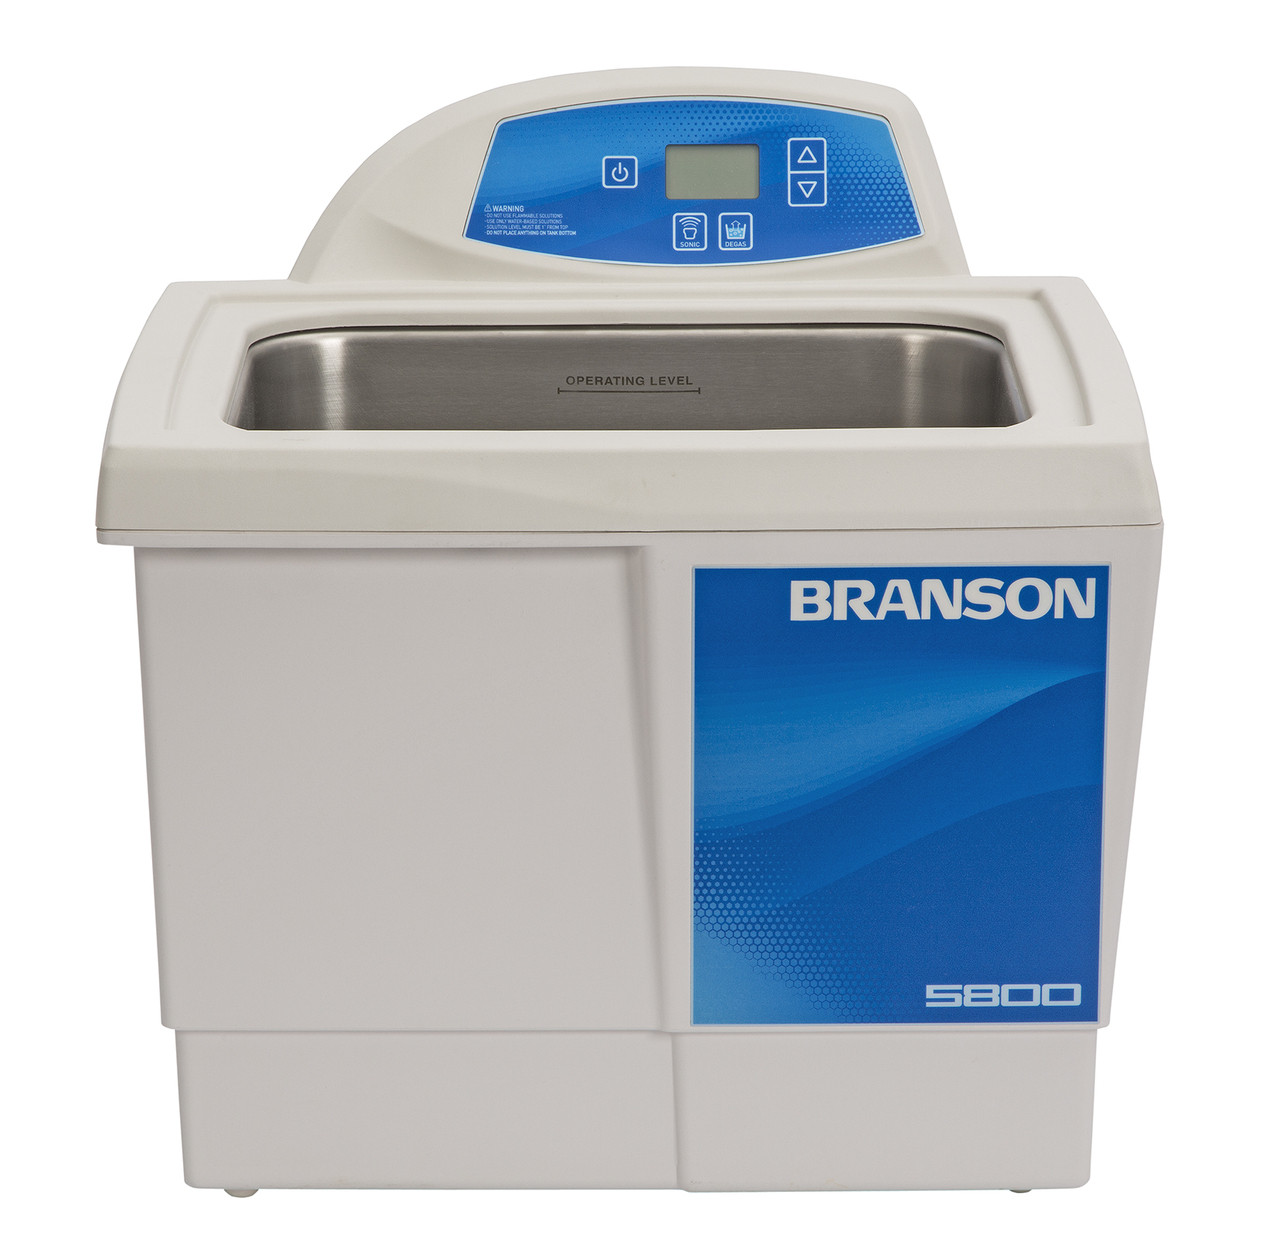 Branson CPX5800 Ultrasonic Cleaner